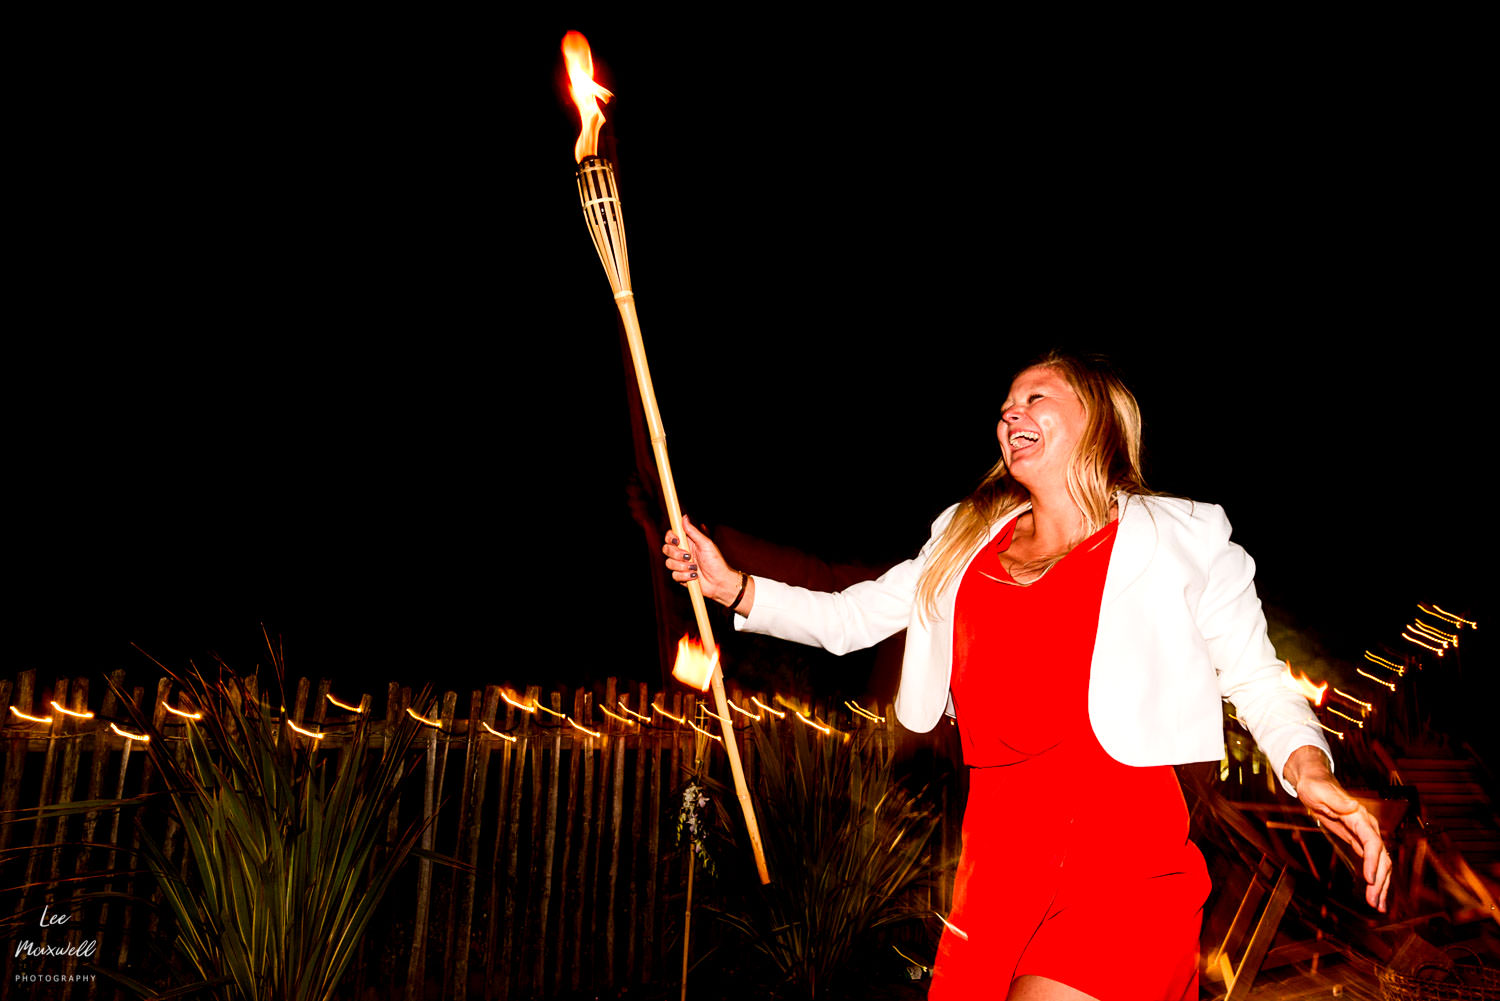 Dancing with fire at wedding